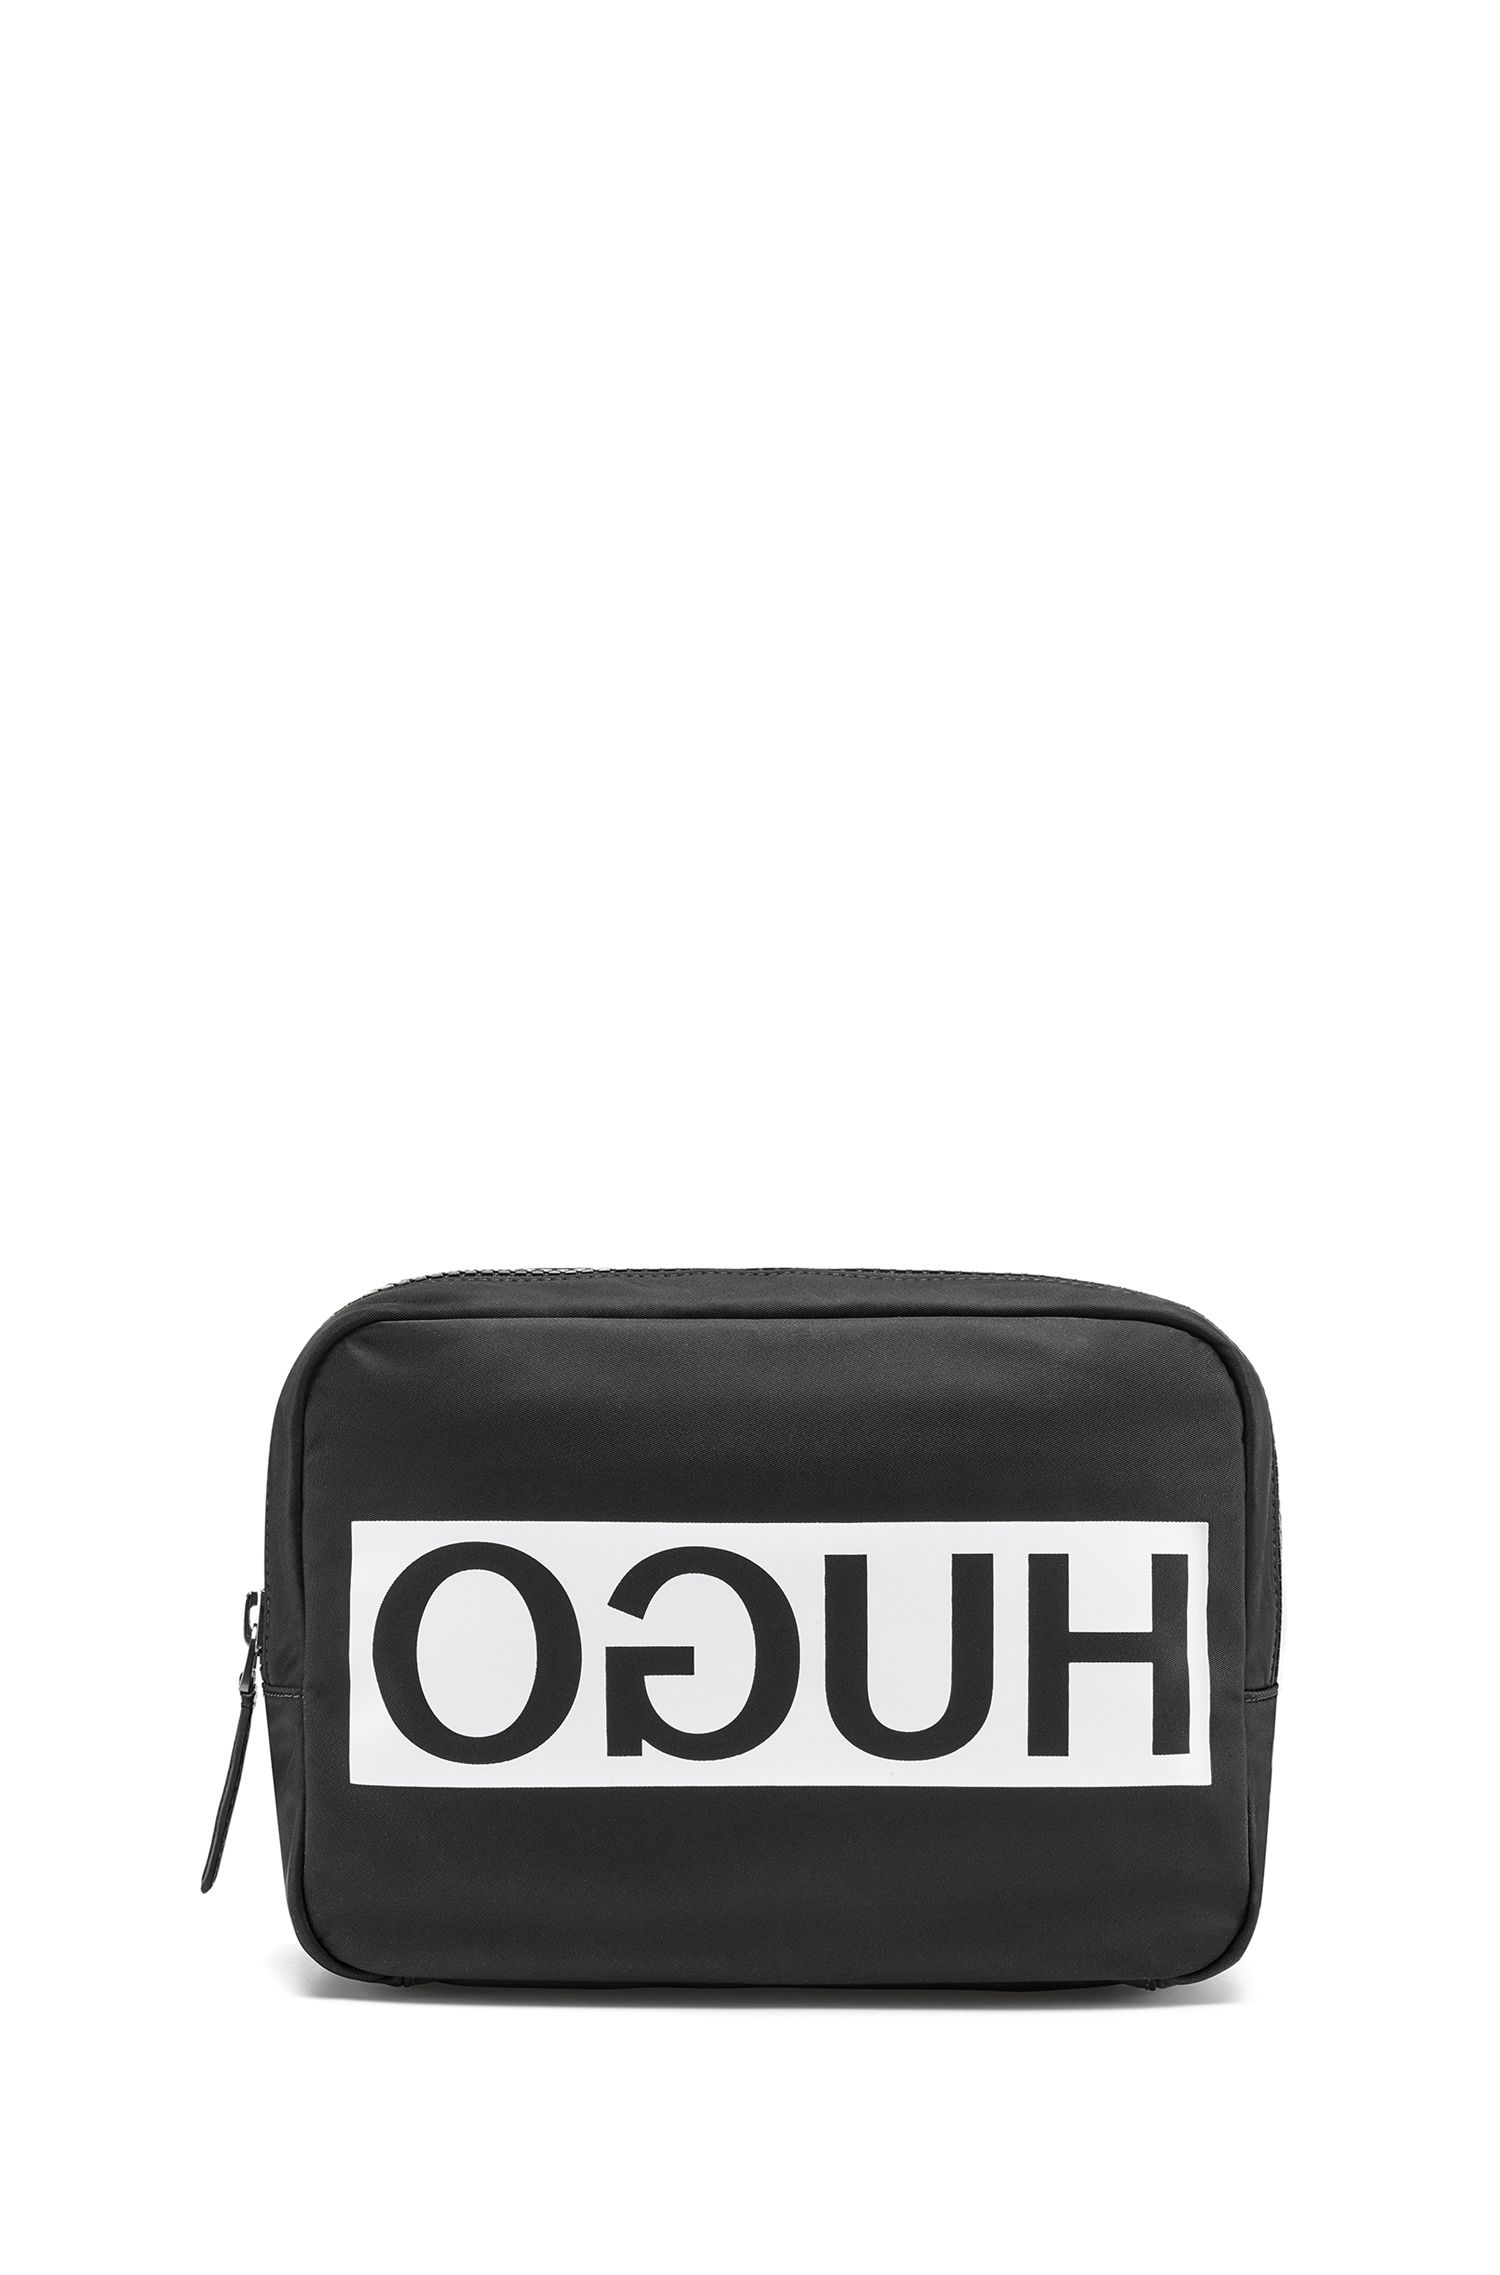 Nylon Toiletry Bag | Tribute Washbag, Black